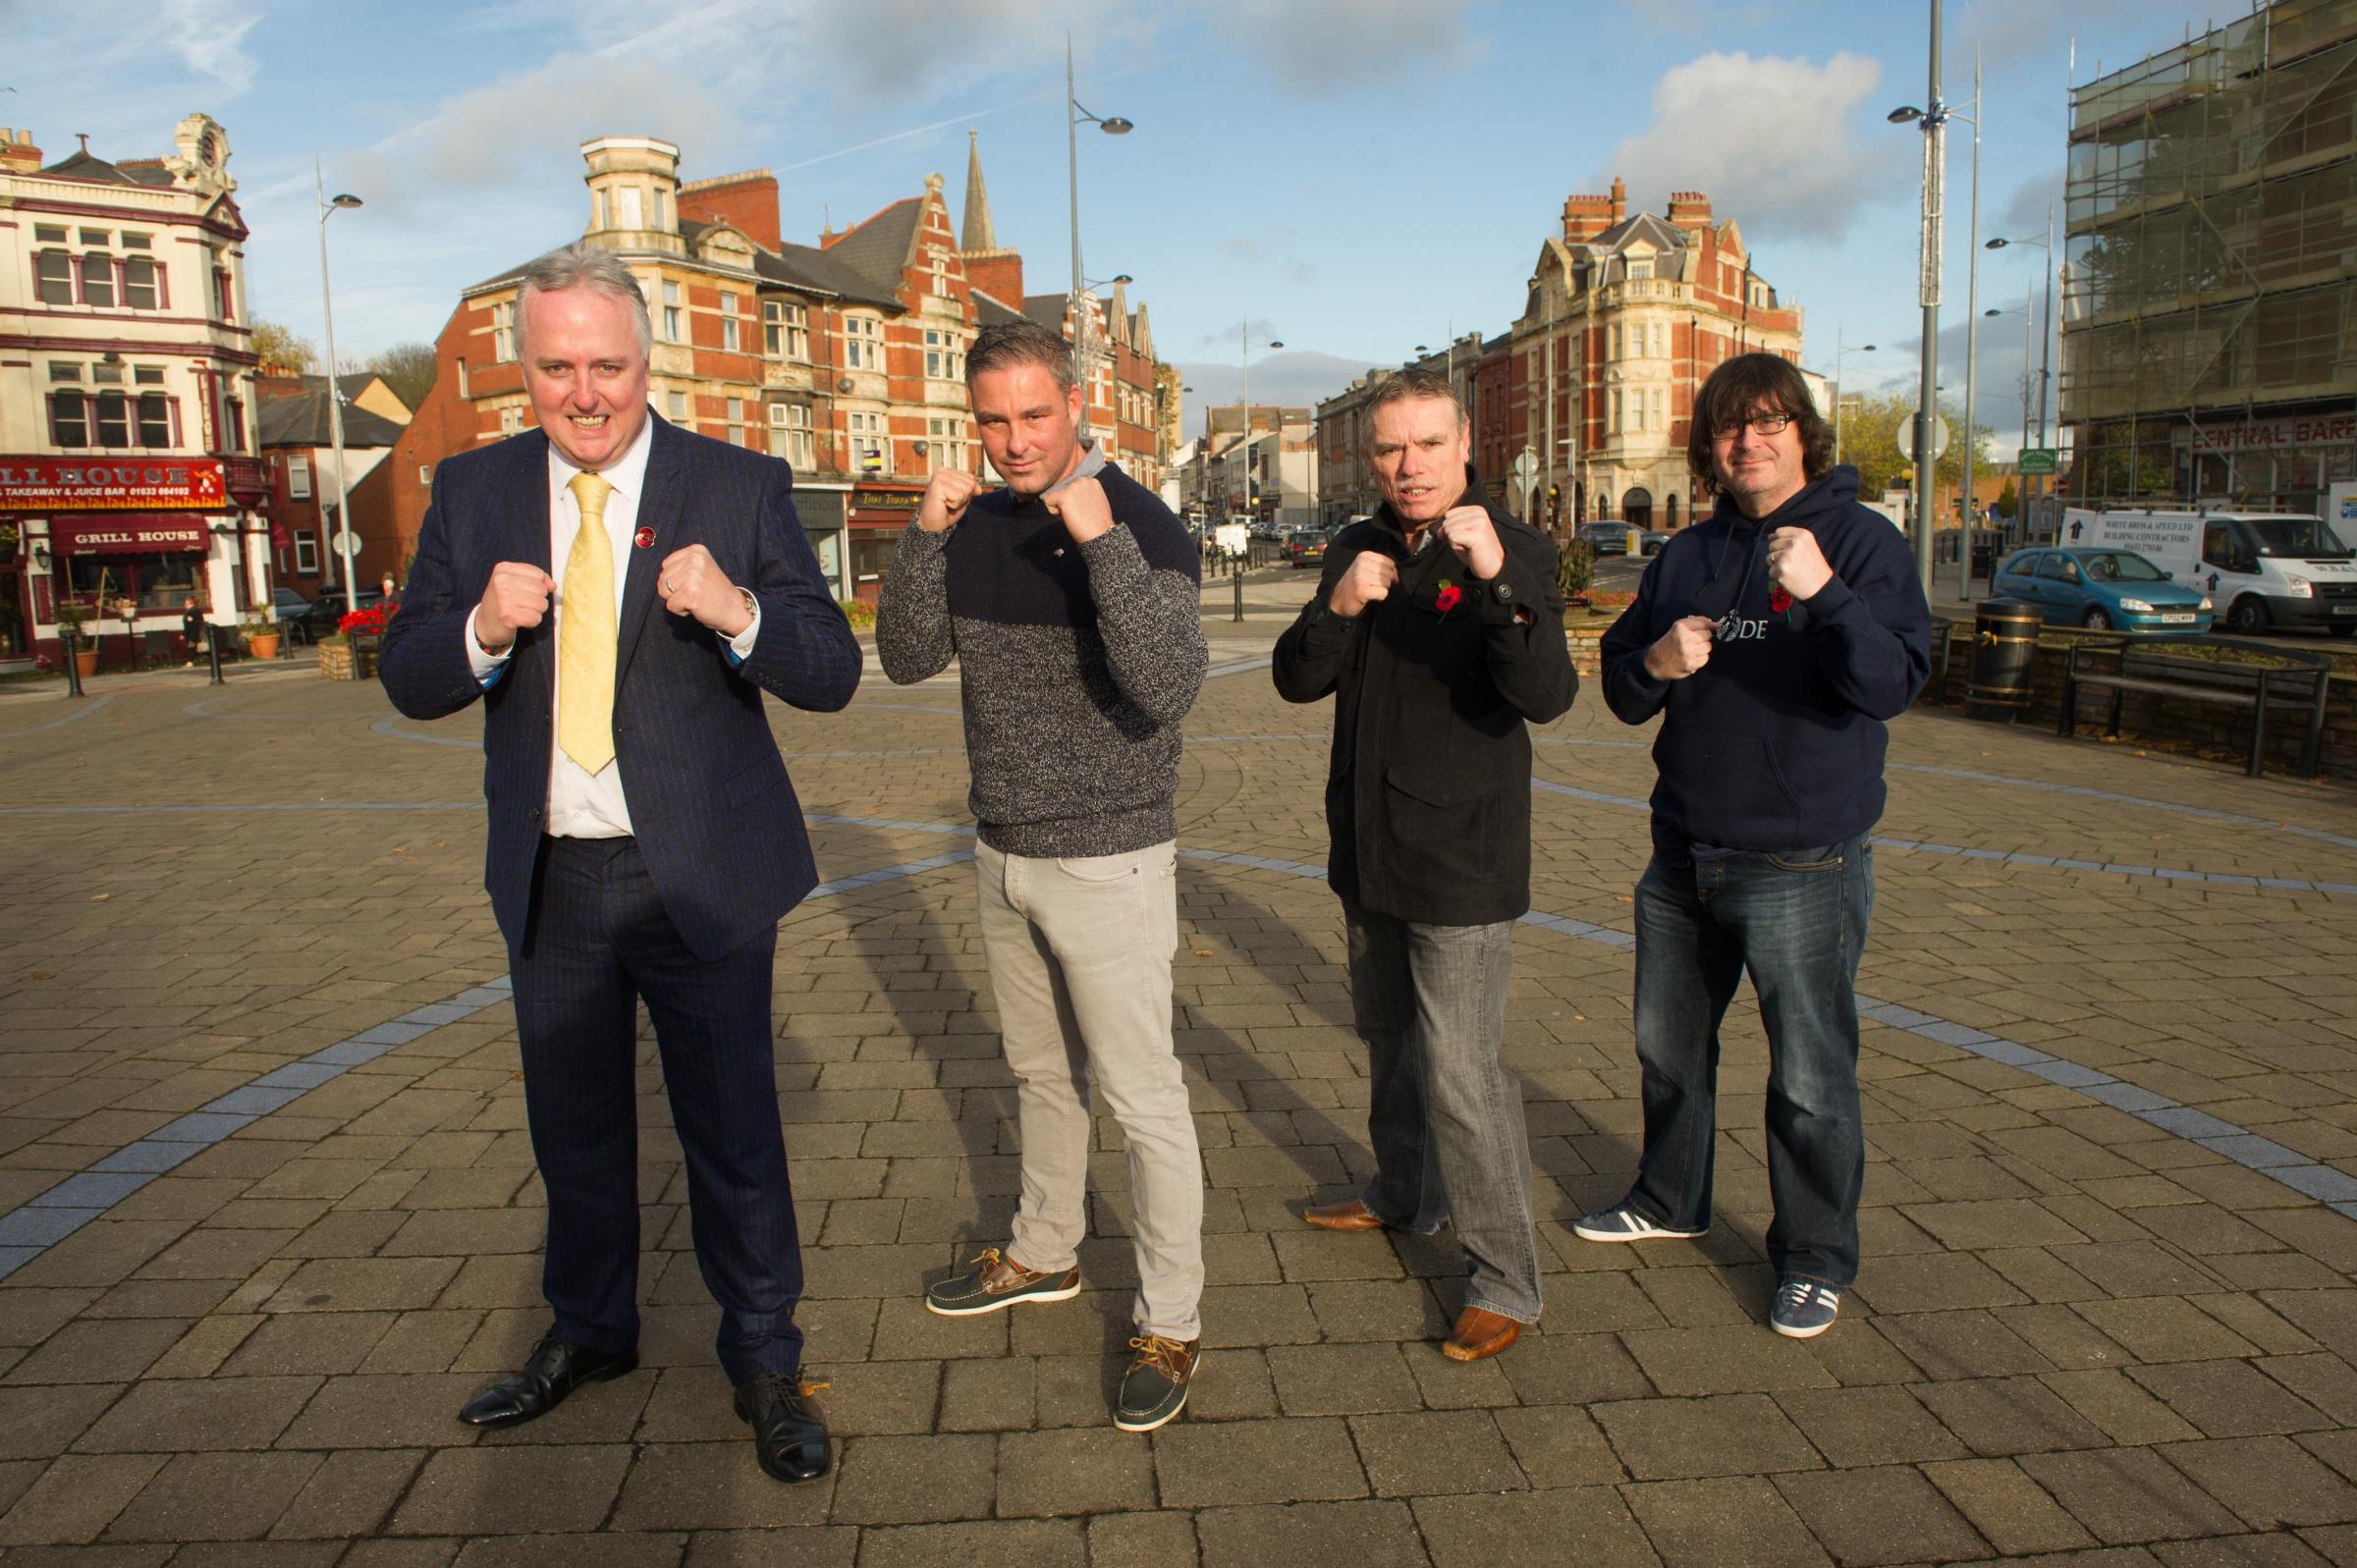 (L-R) Andrew Collingbourne, Luke Pearce, councillor Kevin Whitehead and Rob Santwris who are fundraising to erect a state to Newport boxer David Pearce on Gilligan's Island, the proposed site of the statue